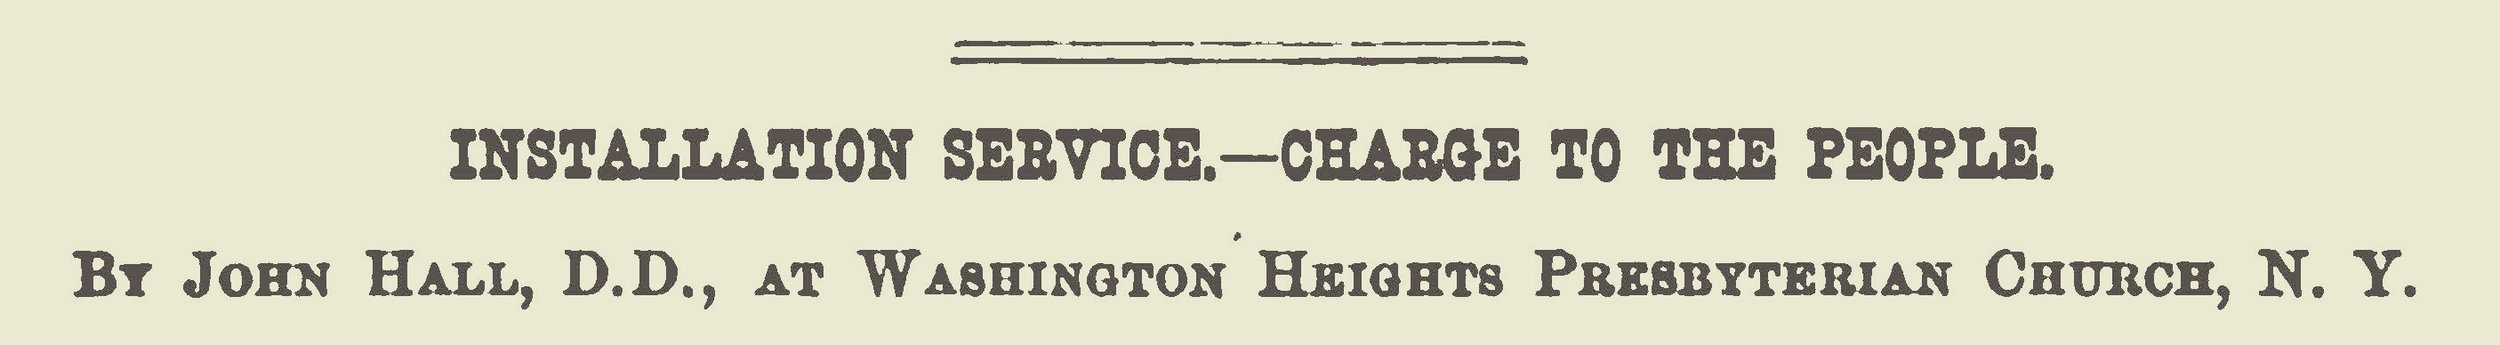 Hall, John, Installation Service Charge to the People Title Page.jpg